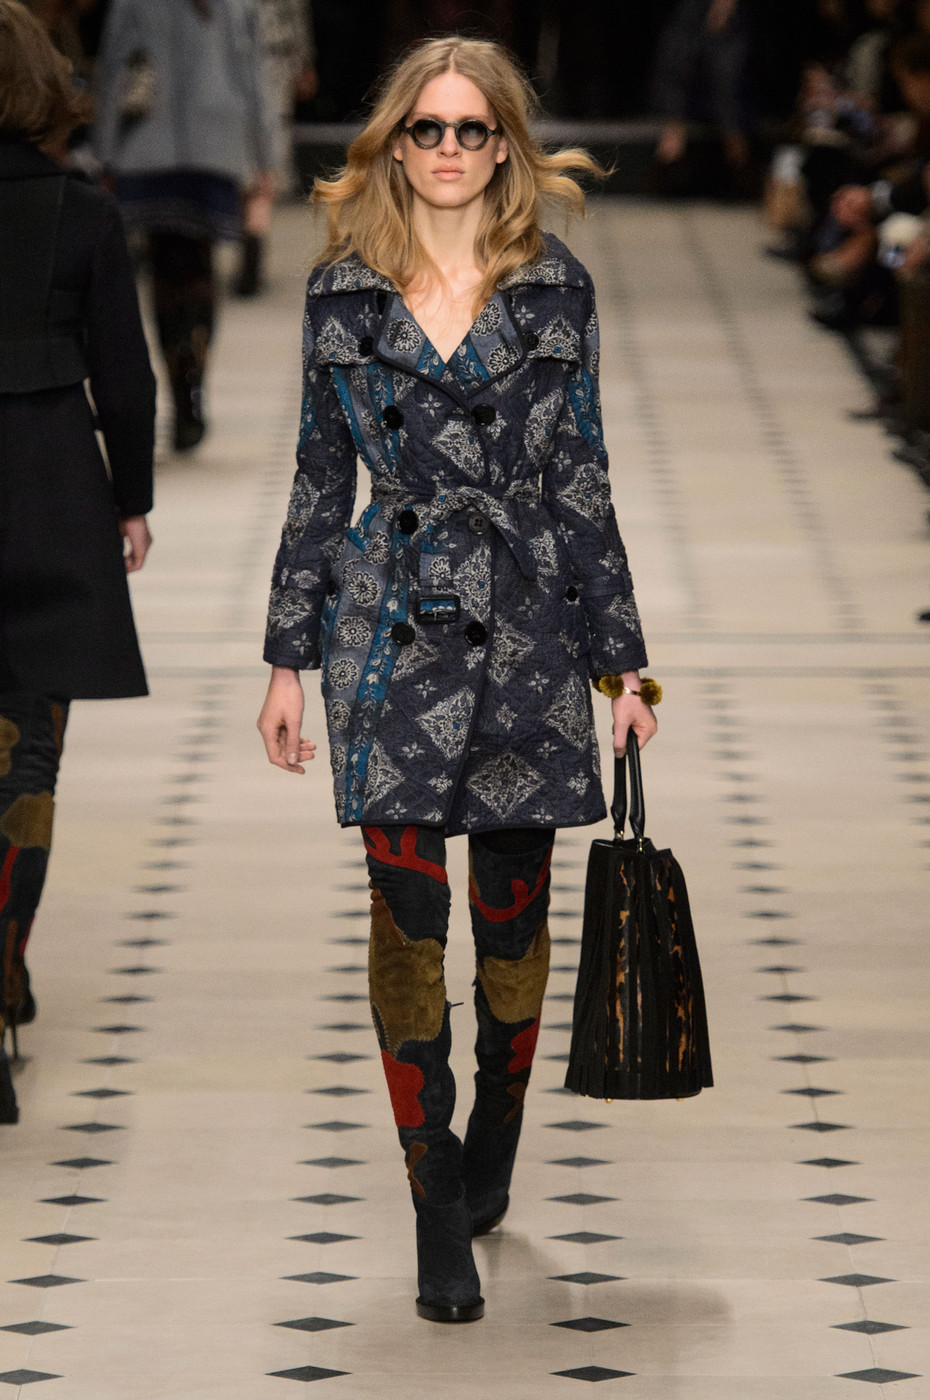 Burberry Prorsum At London Fashion Week Fall 2015 Livingly